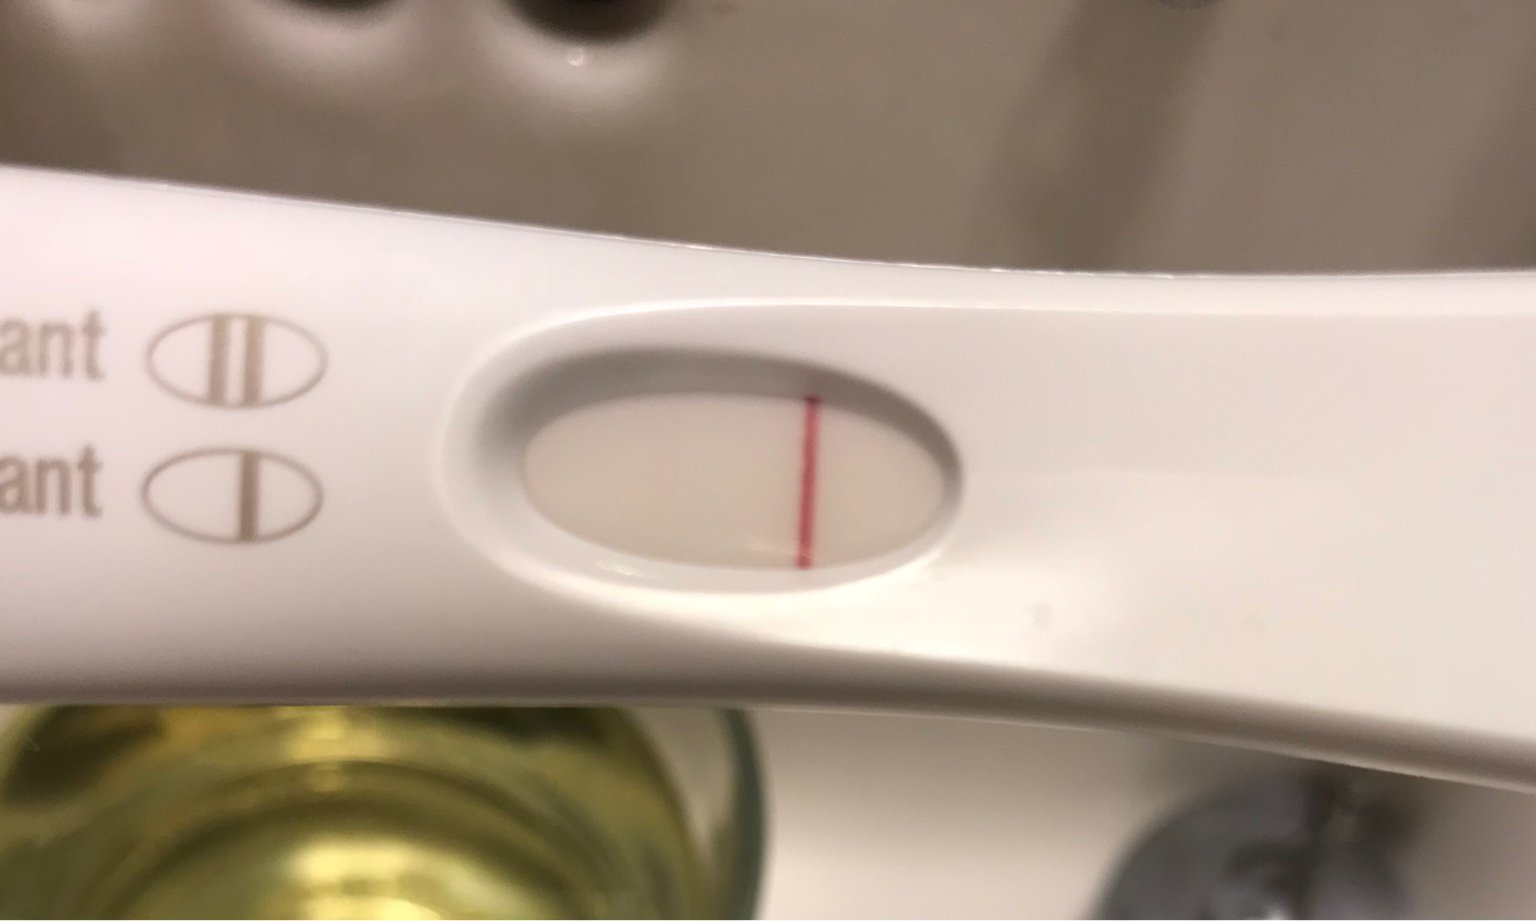 Very faint positive on frer? | Netmums